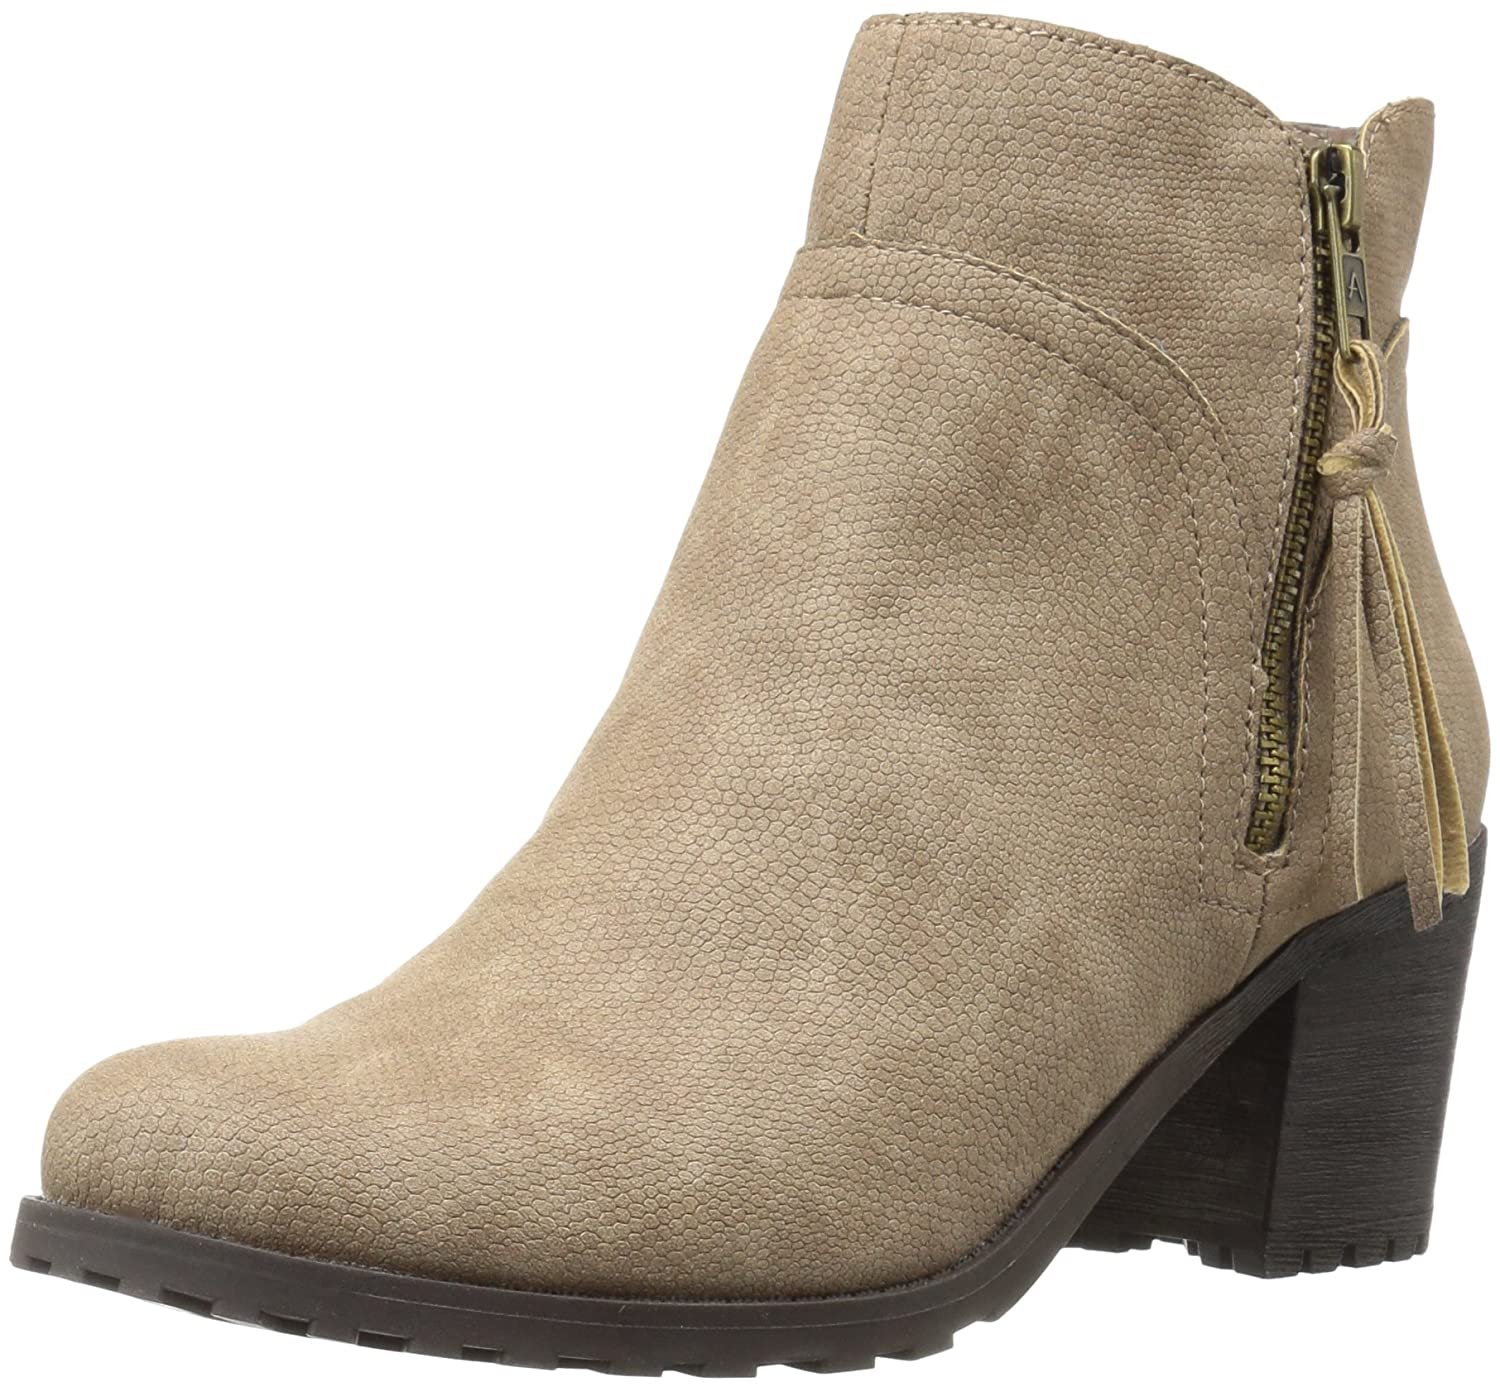 Aerosoles Women's Convincing Boot B005ADW7HG 10 W US|Taupe Snake